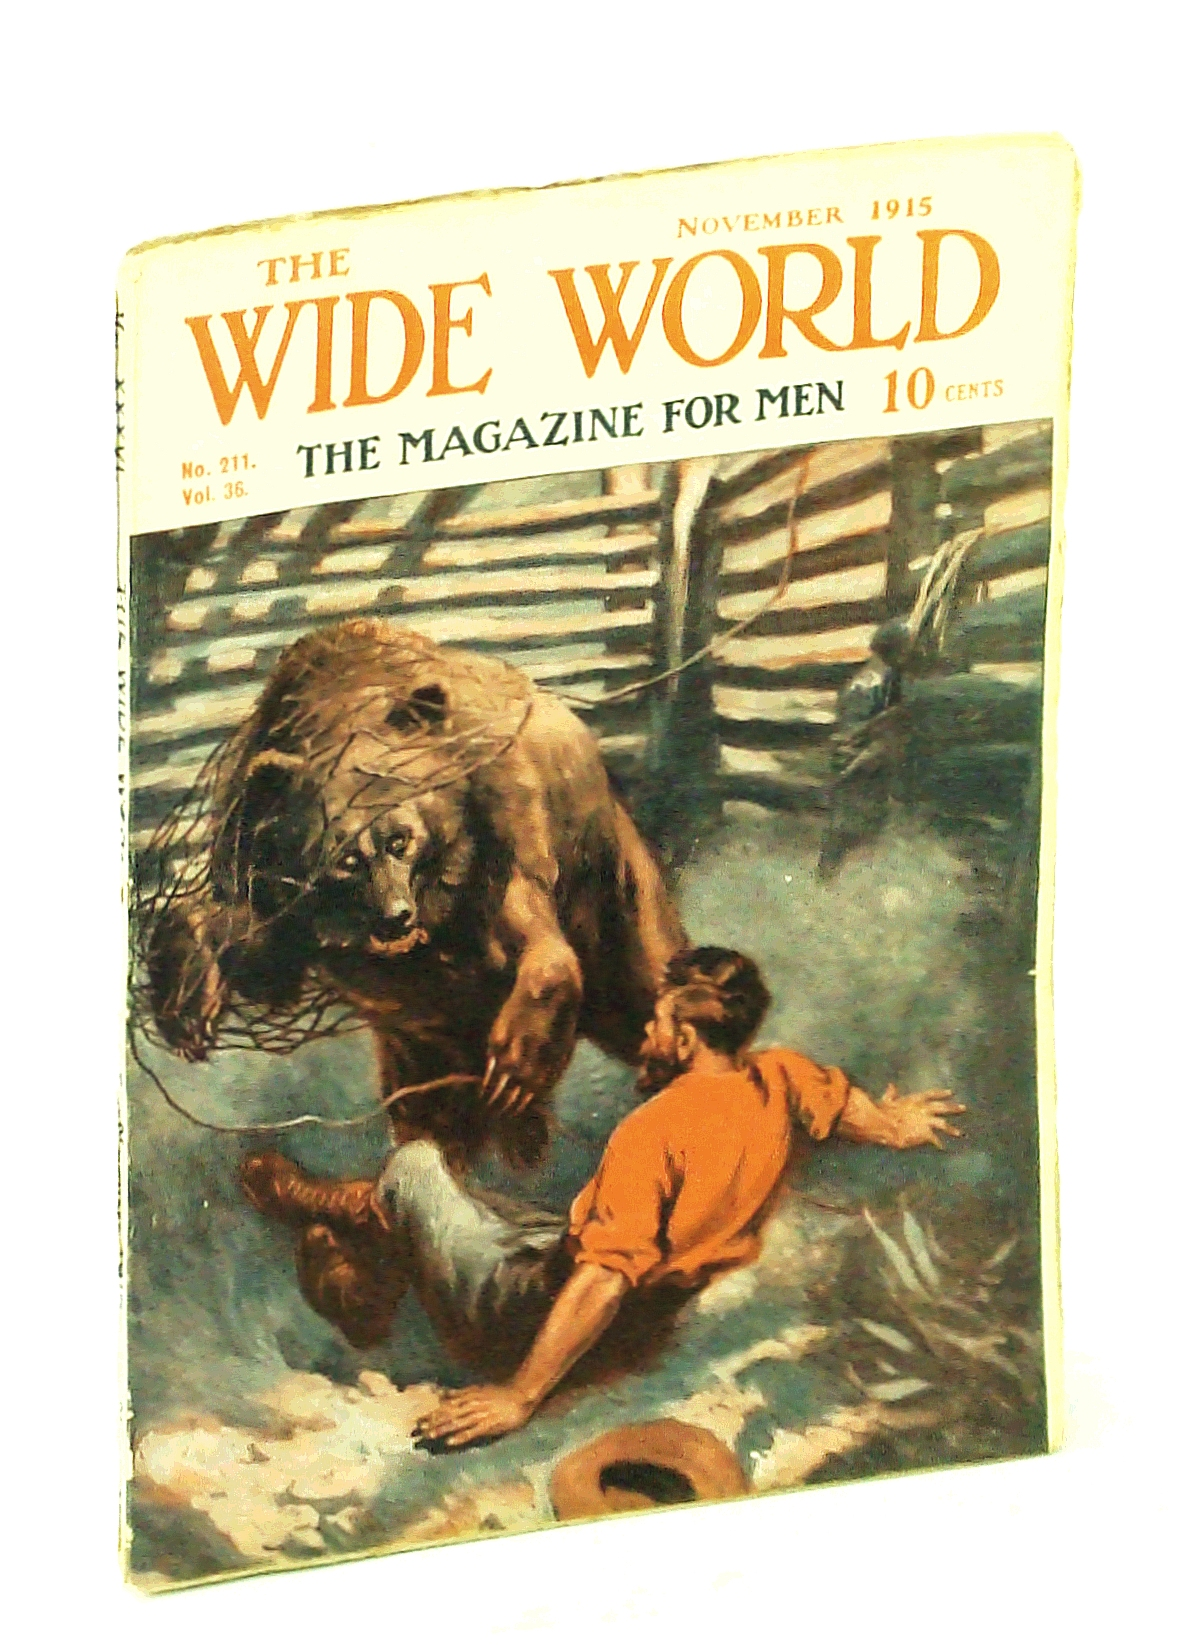 Image for The Wide World, The Magazine for Men, November [Nov.] 1915, Vol. 36, No. 211 -  Journey Down the Amazon From Its Source